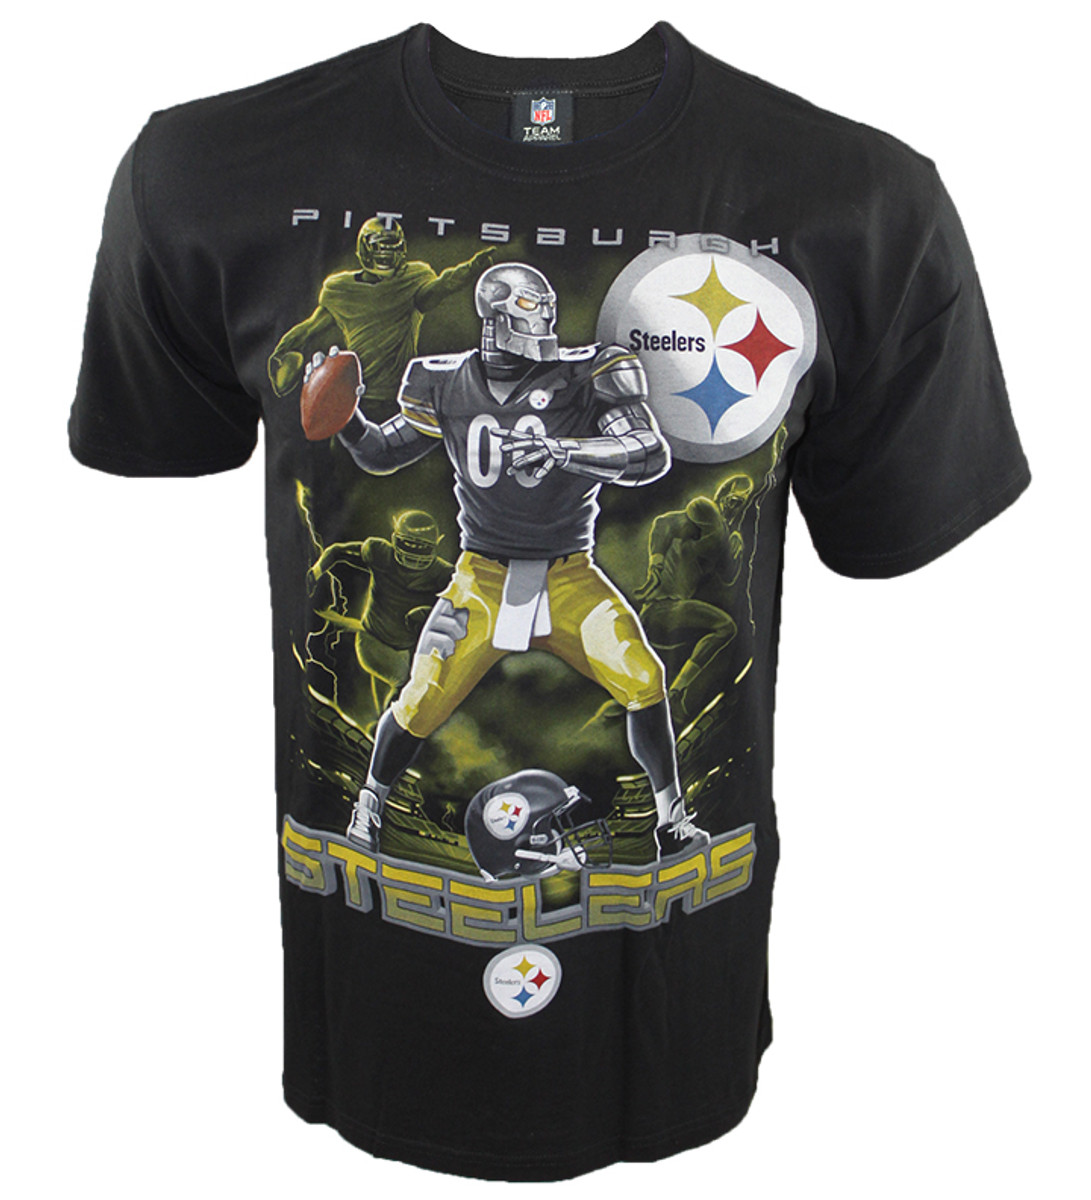 cheaper e3a12 586a3 Pittsburgh Steelers Antonio Brown Shirt